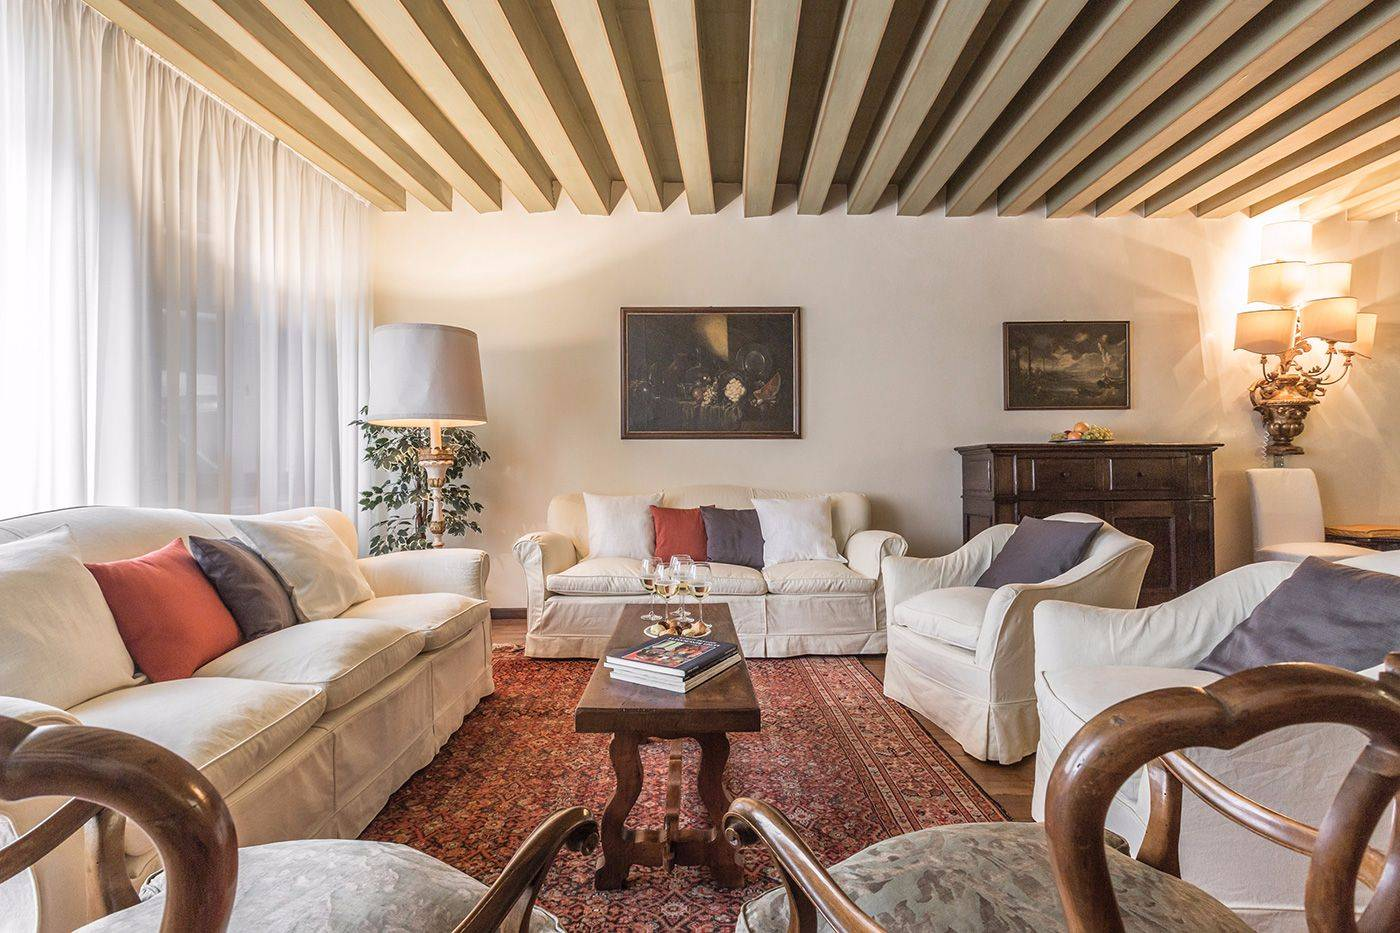 gather up your loved ones around the cozy Michiel living room